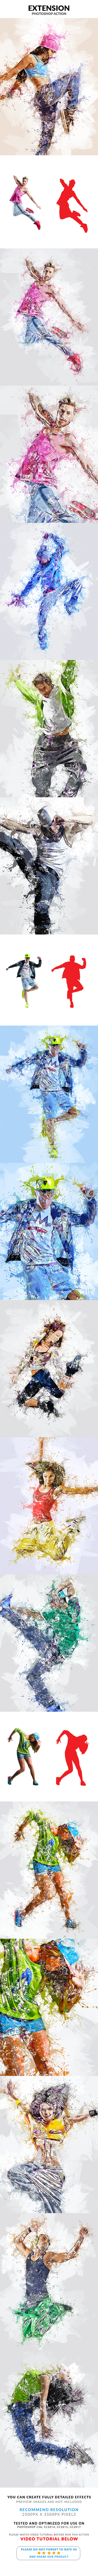 Extension Photoshop Action - Photo Effects Actions